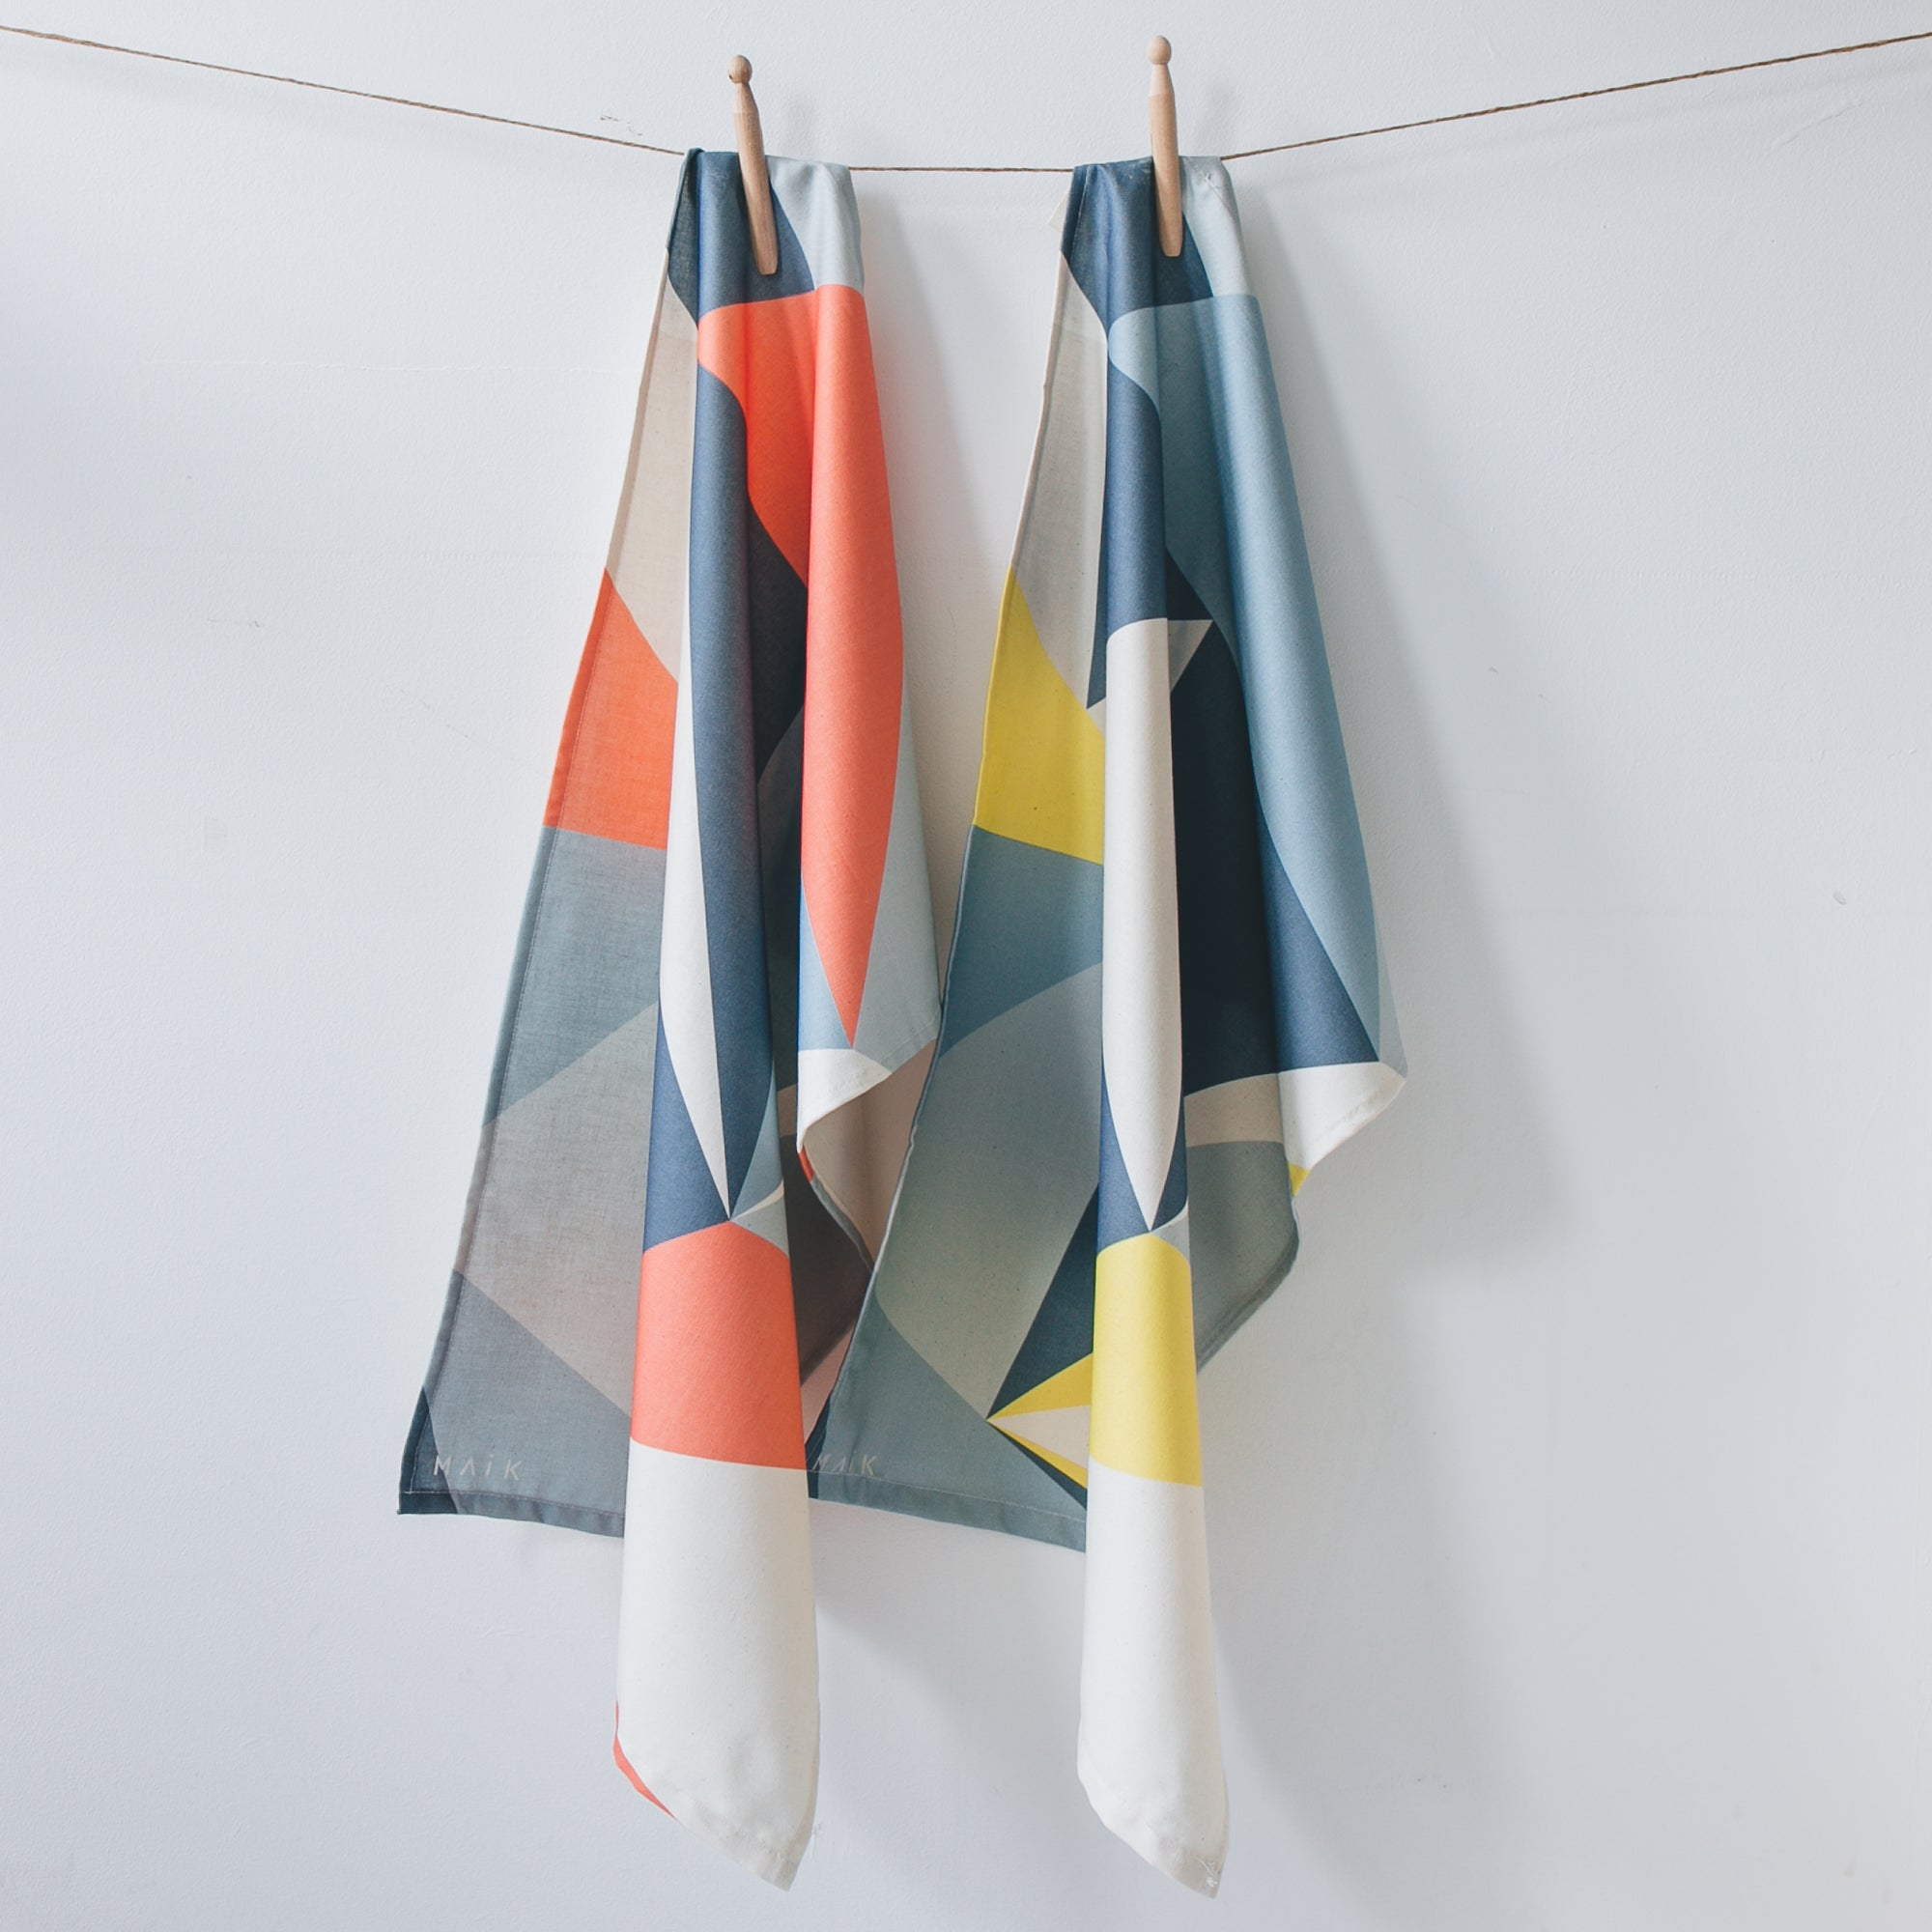 Set of 2 Angles Tea Towels - MAiK sustainably sourced, ethically produced.